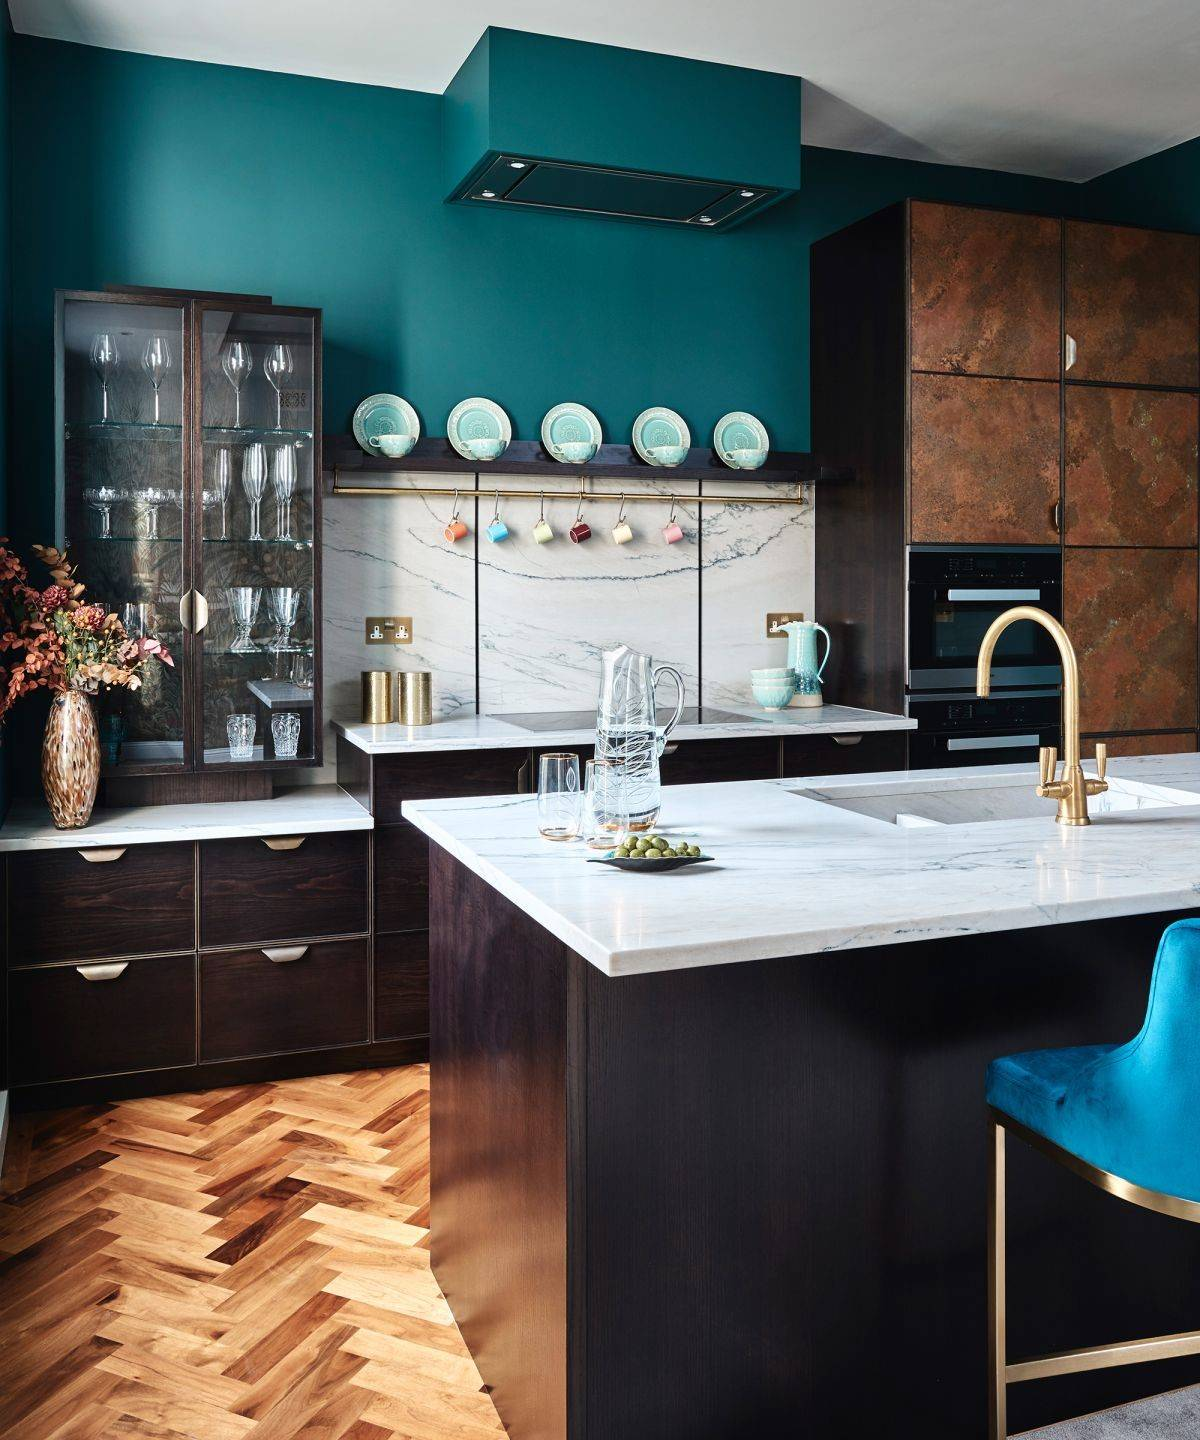 green kitchen paint against dark wood cabinets and marble countertops